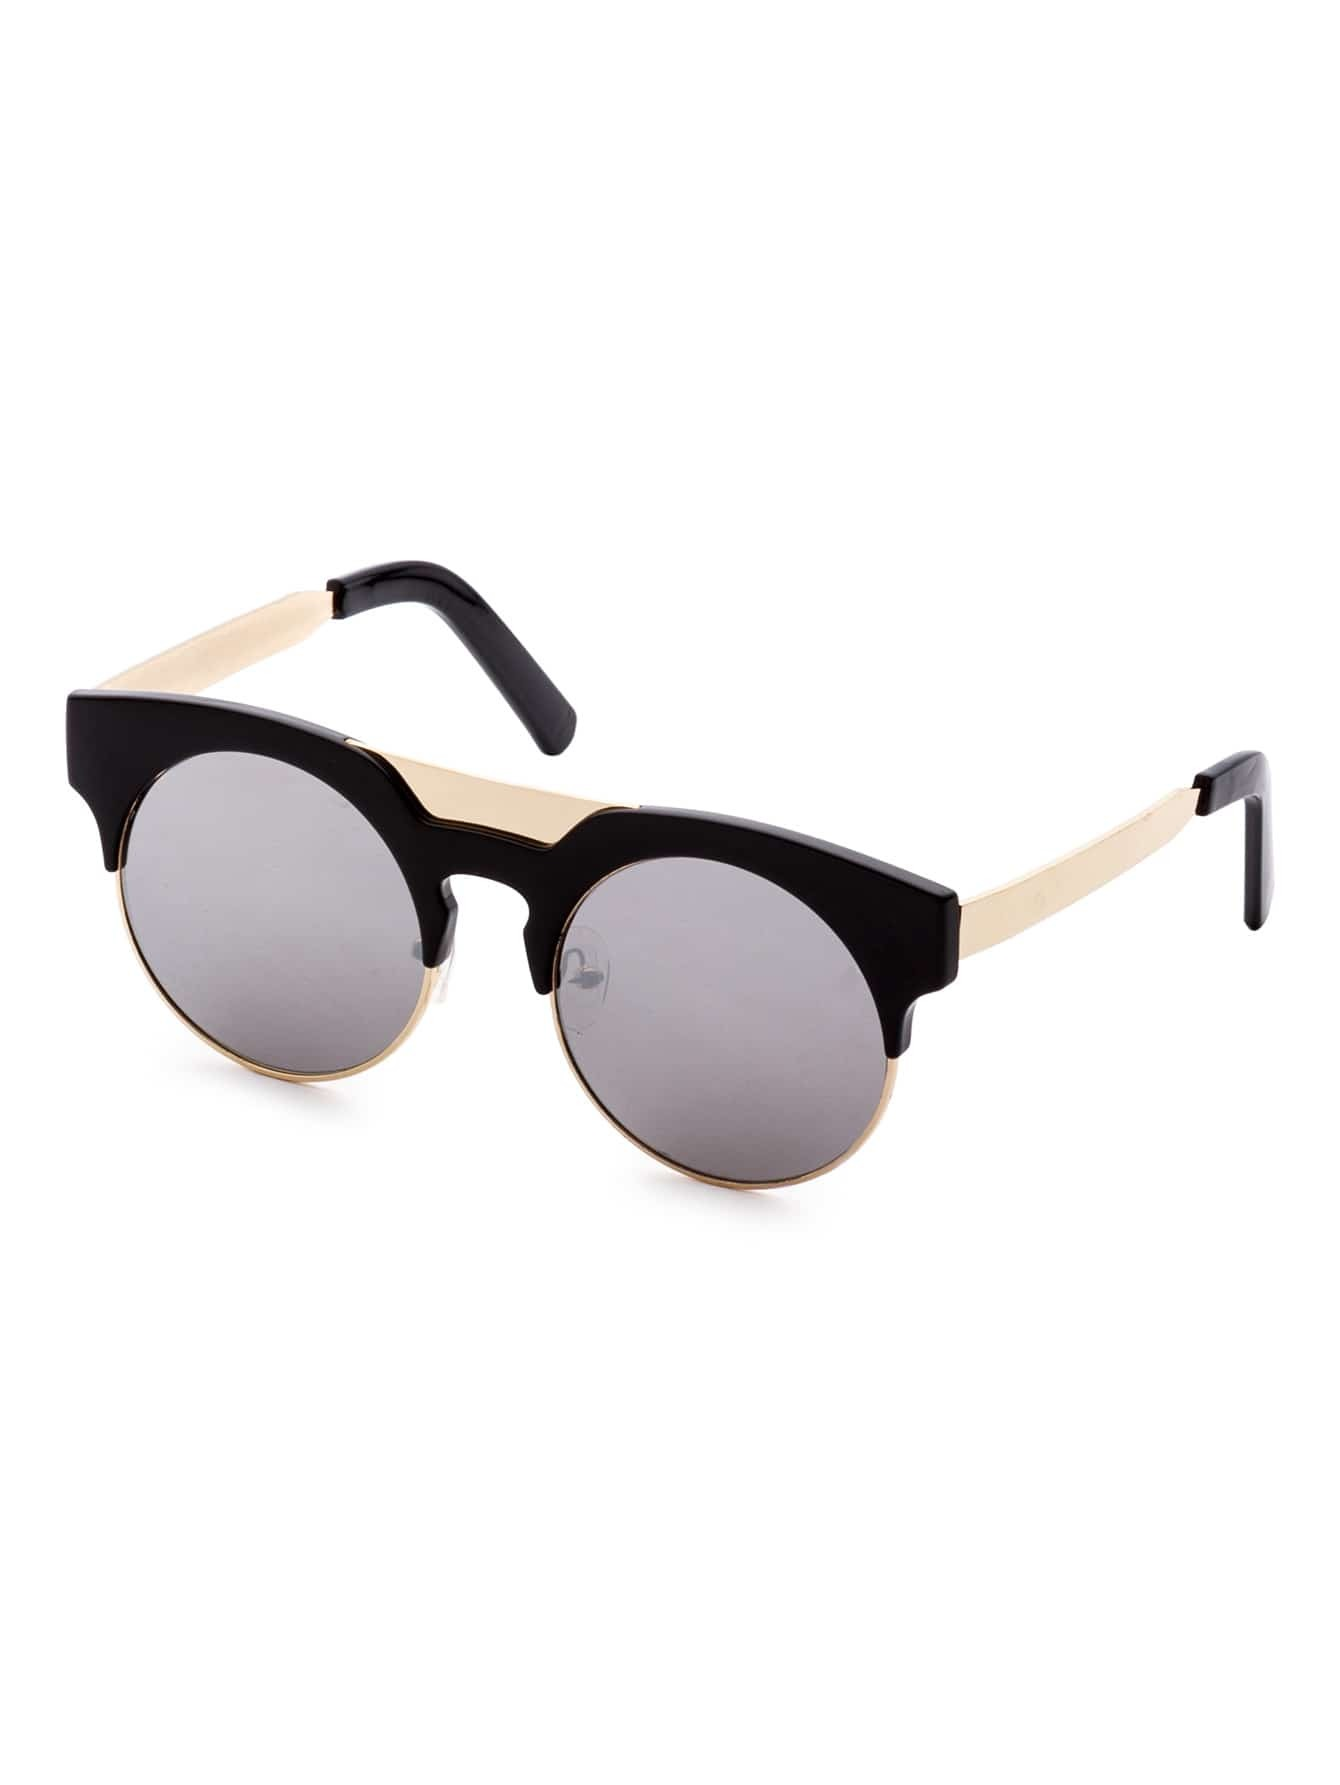 Shop black gold sunglasses at Neiman Marcus, where you will find free shipping on the latest in fashion from top designers. Gucci Retro Square Aviator Sunglasses, Gold/Black Details Gucci men's aviator sunglasses from the Cruise '18 Runway. Eye/bridge/temple (in mm): Lightweight metal and acetate frames.